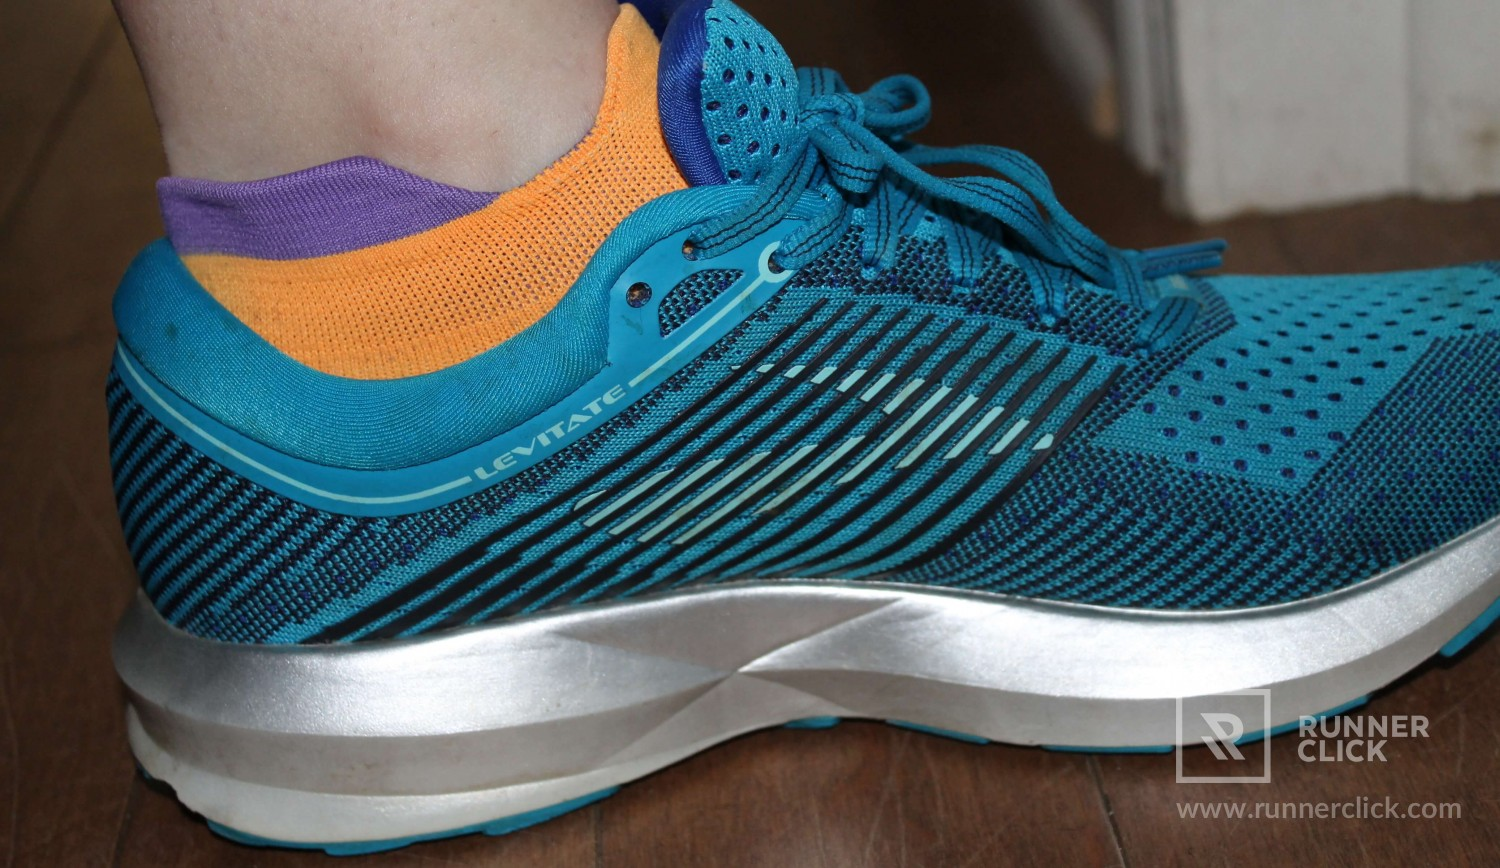 Brooks Levitate Reviewed - To Buy or Not in July 2018?